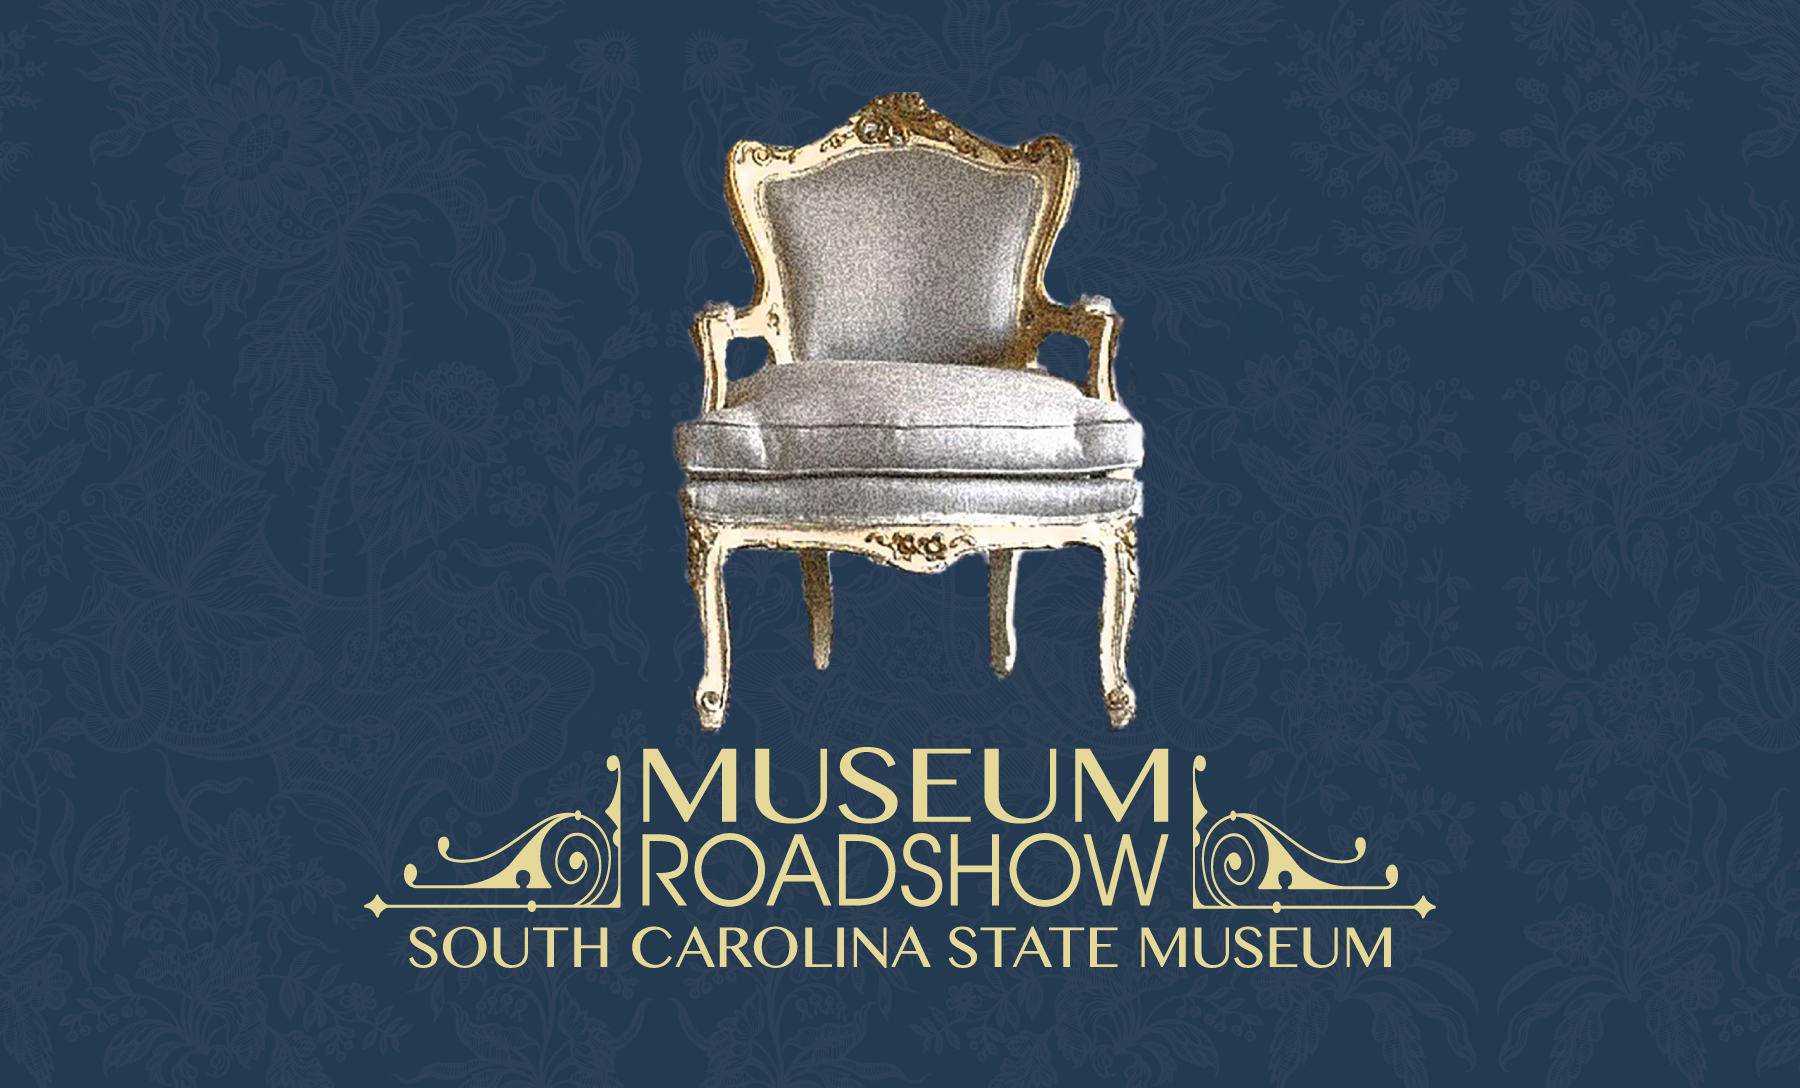 Museum Road Show, Antique Appraisal, South Carolina State Museum